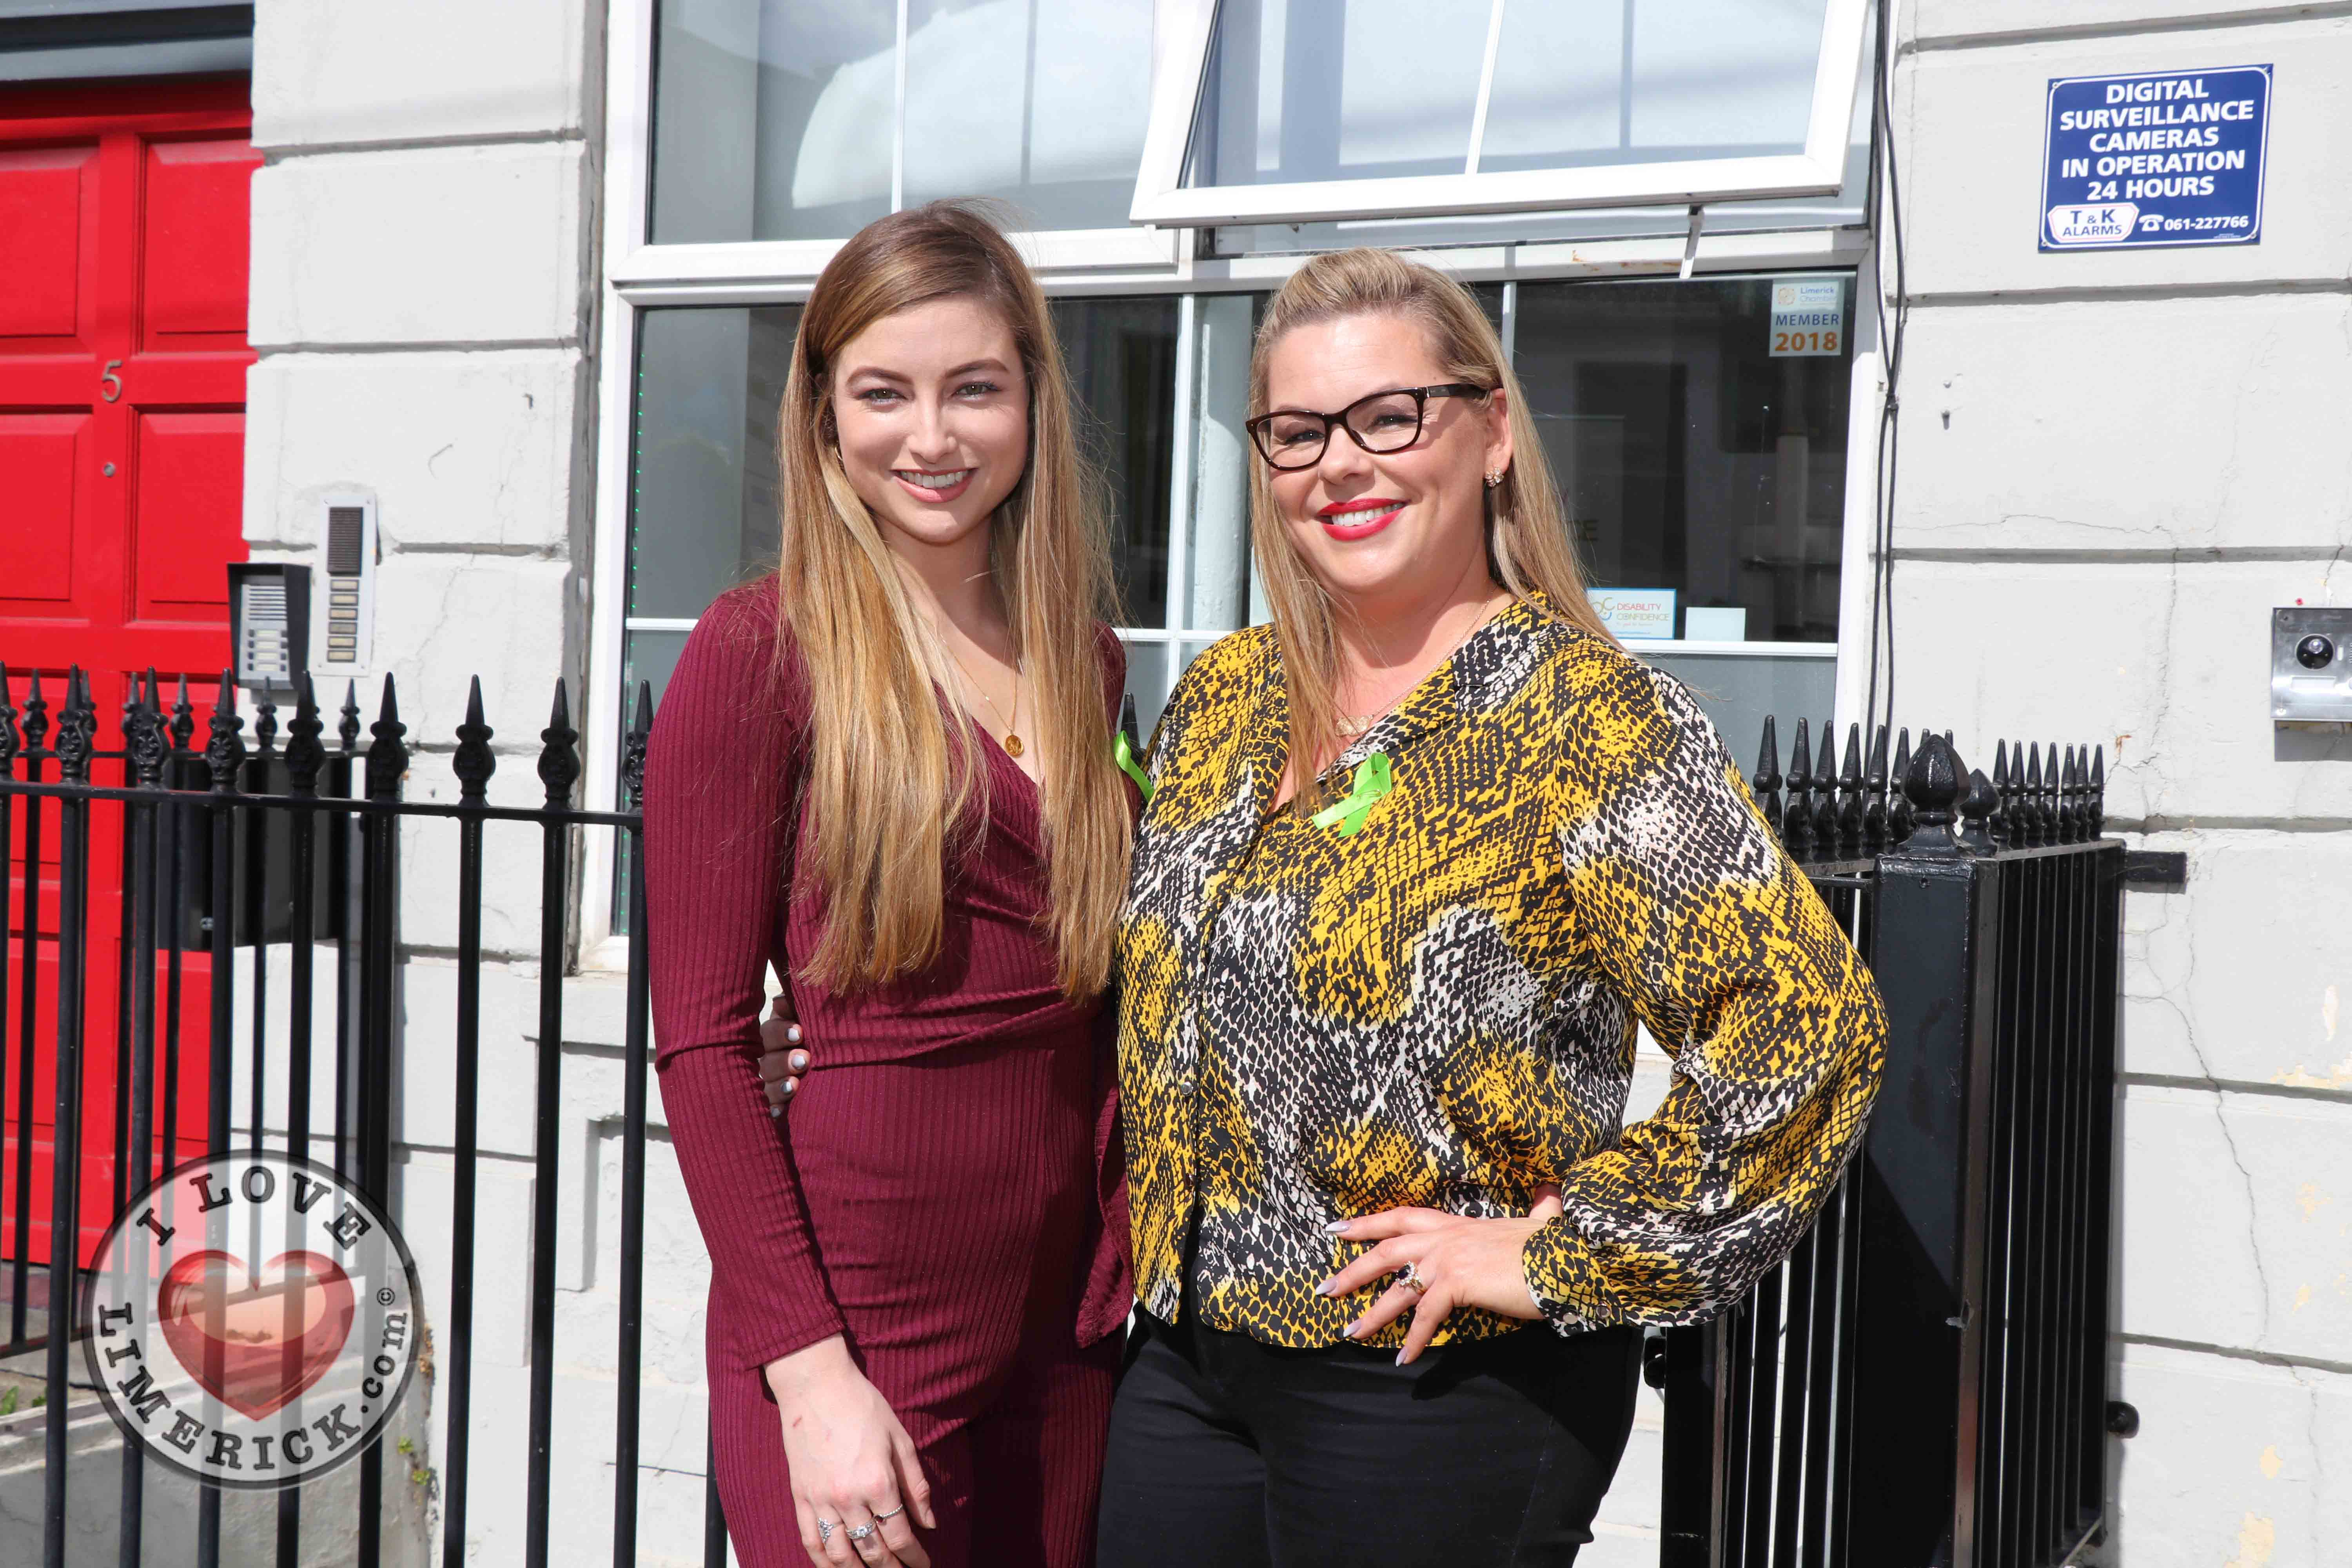 Pictured at the EmployAbility Limerick Office for the launch of the upcoming Green Ribbon campaign and 'Time to talk' day on Tuesday May 7th are Meghann Scully, Mental Health Advocate, and Ursula Mackenzie, EmployAbility Limerick. Picture: Conor Owens/ilovelimerick.